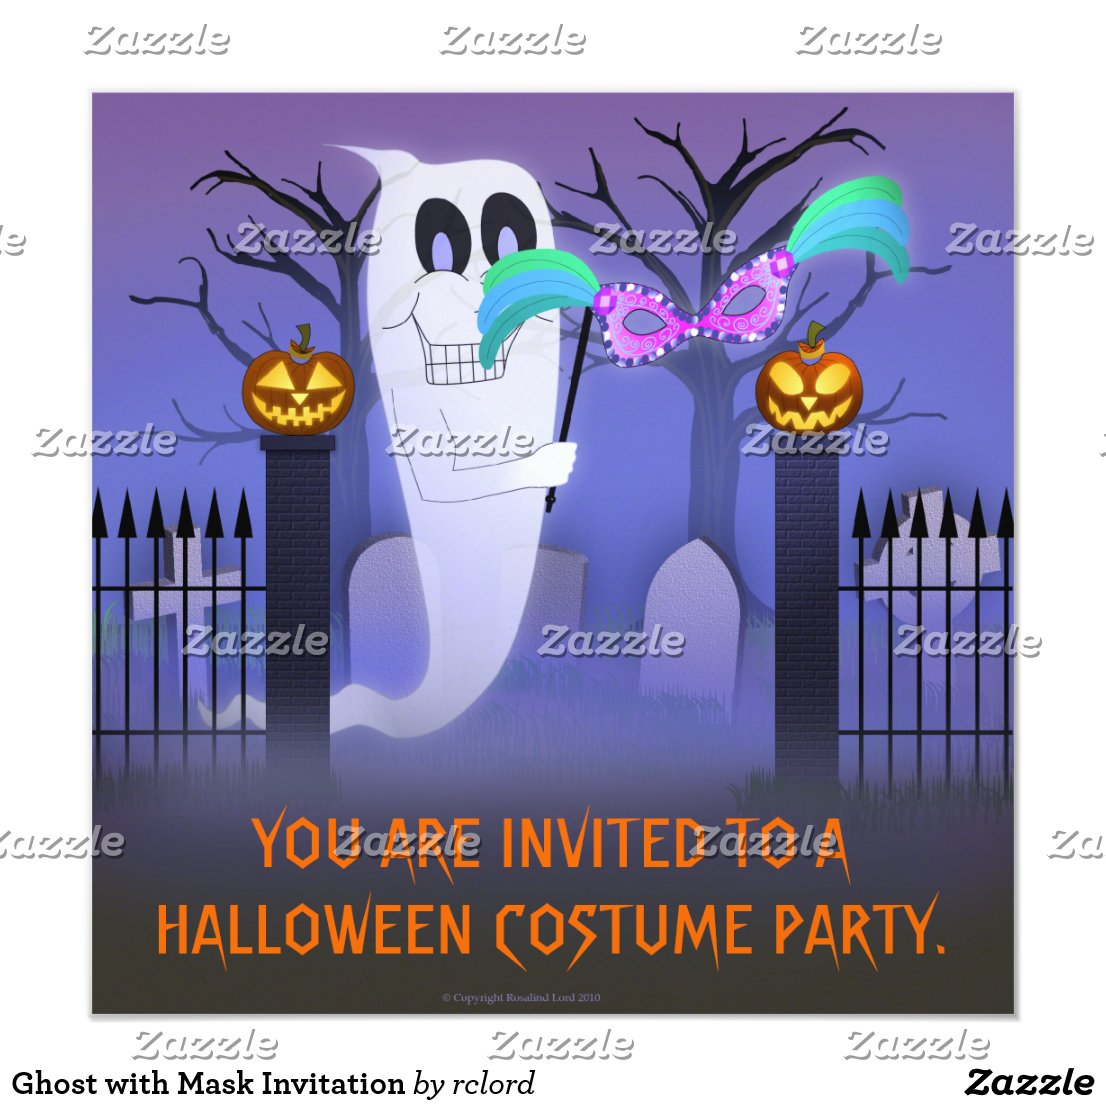 Ghost with Mask Invitation